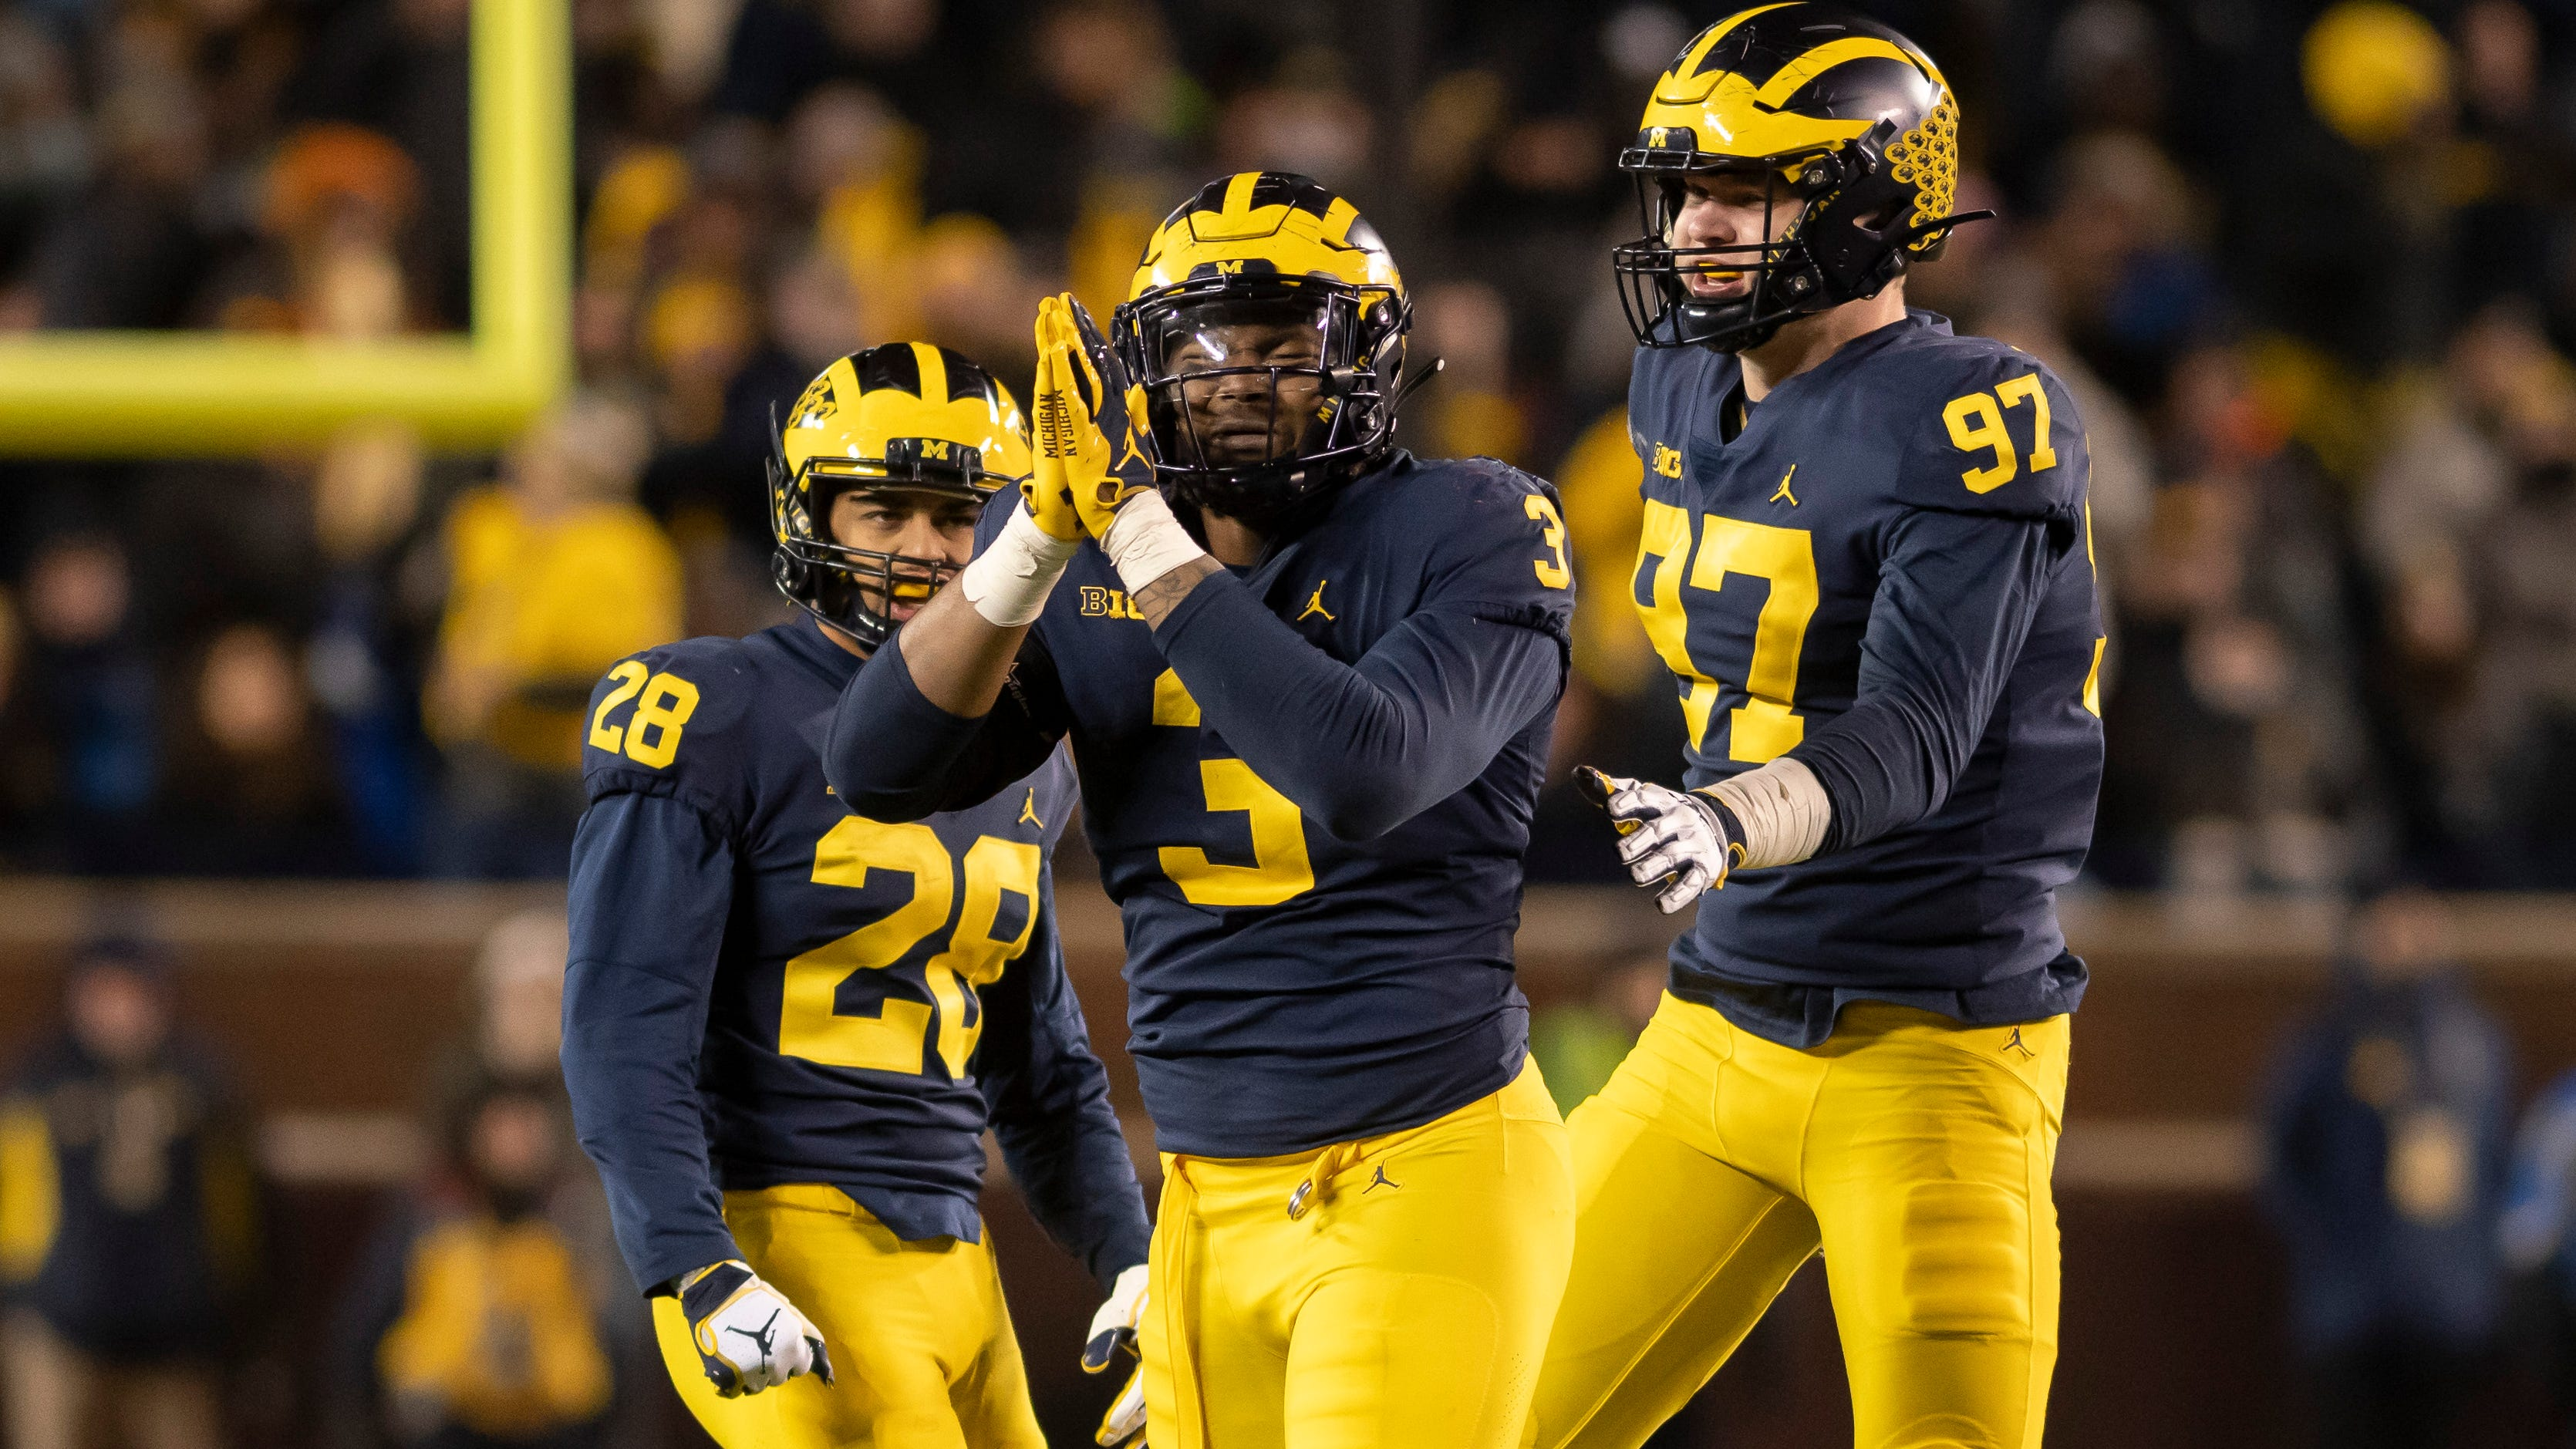 From left, Michigan defensive back Brandon Watson, defensive lineman Rashan Gary, and defensive lineman Aidan Hutchinson celebrate a sack late in the fourth quarter.